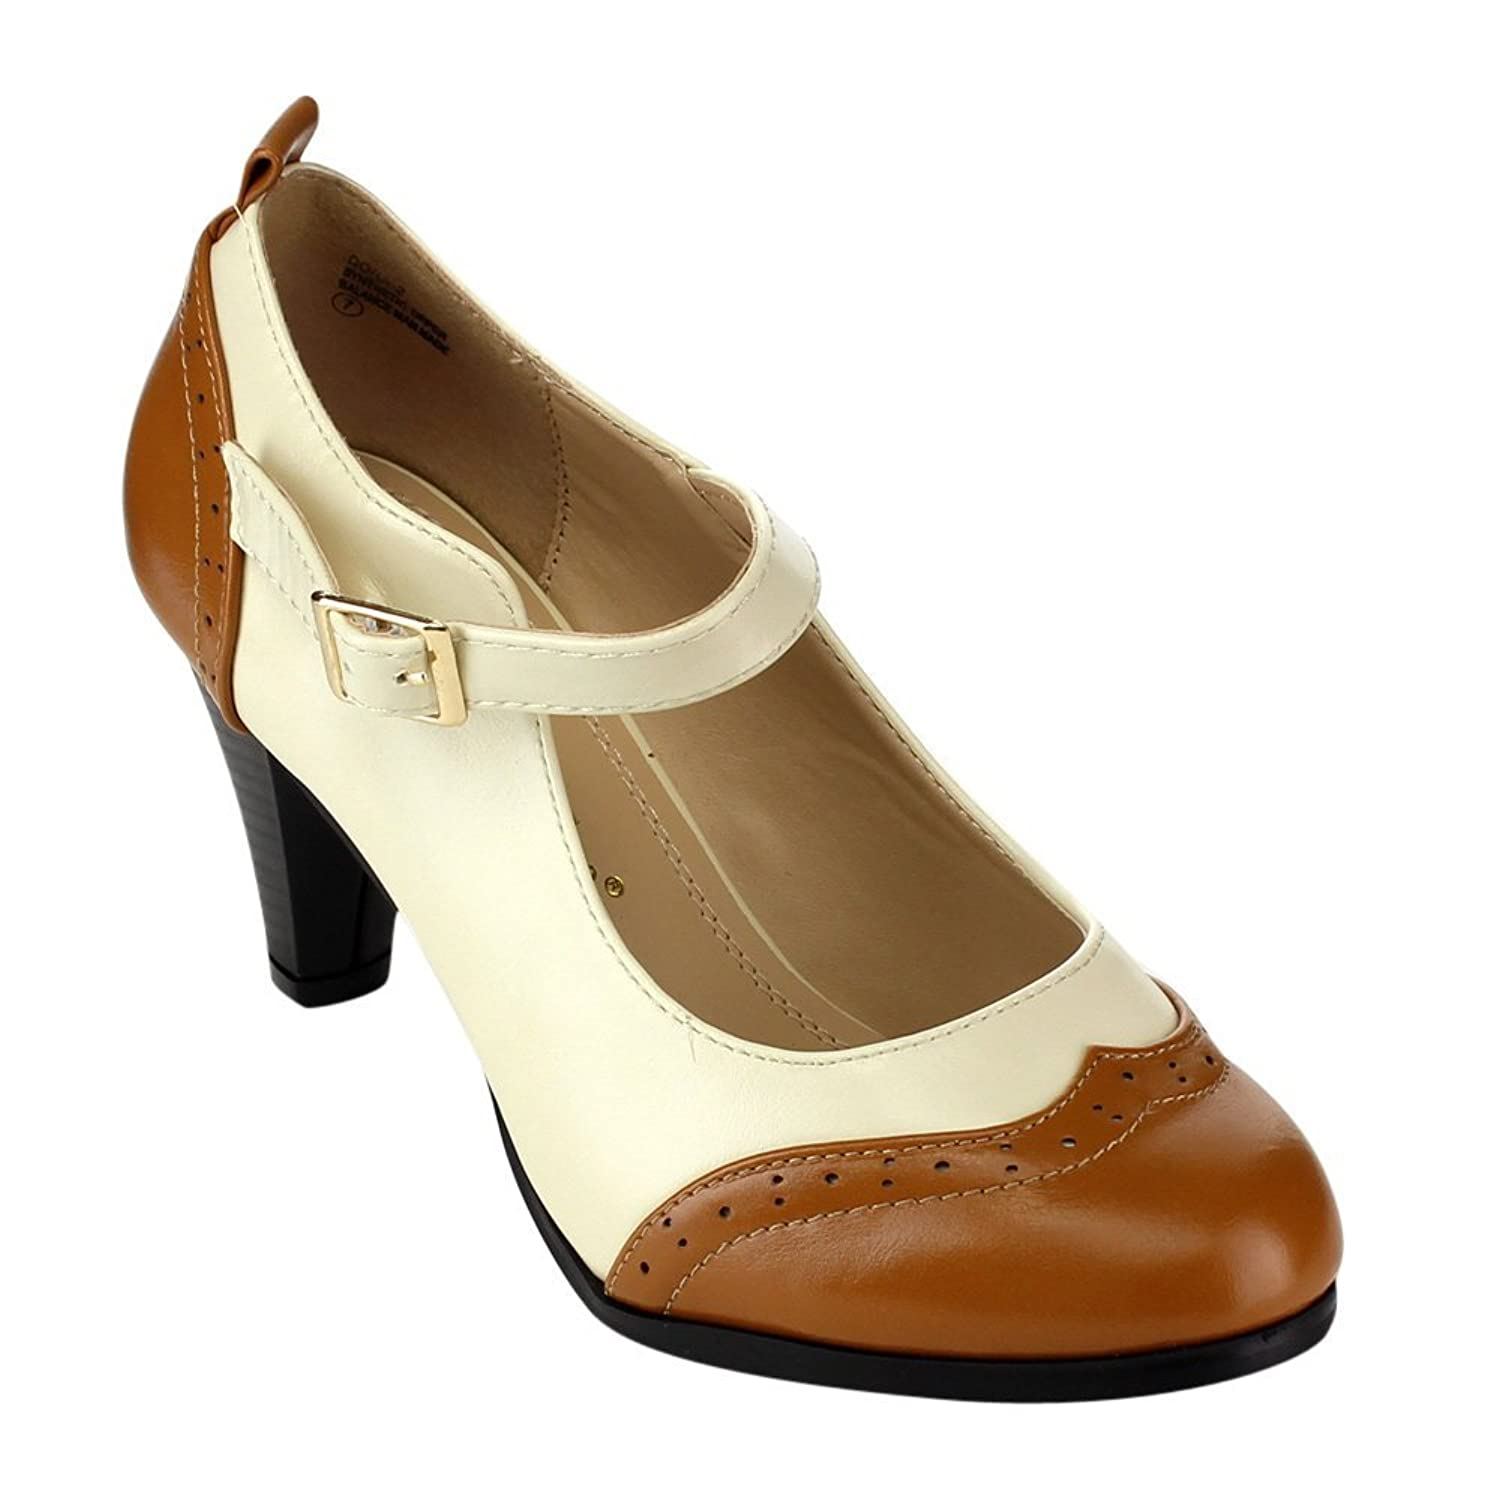 Vintage Shoes, Vintage Style Shoes Chase & Chloe Dora-2 Womens Round Toe Two Tone Mary Jane Pumps $32.99 AT vintagedancer.com